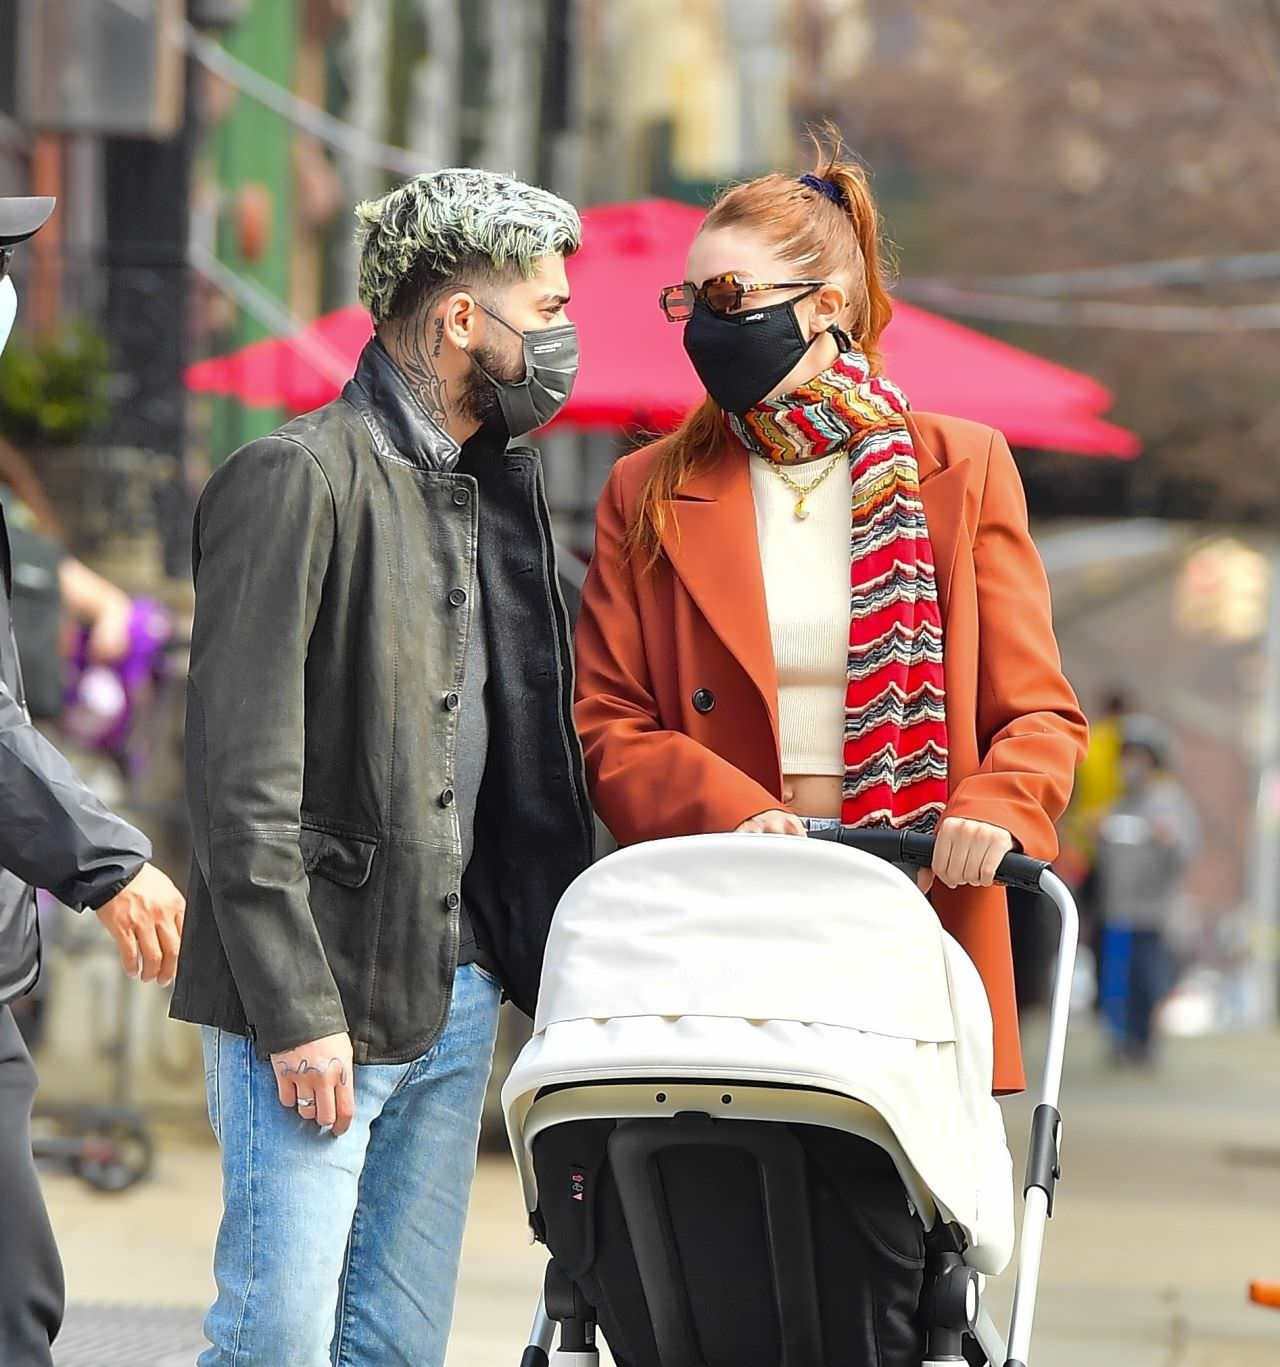 Gigi Hadid and Zayn Malik With Their Daughter in NYC